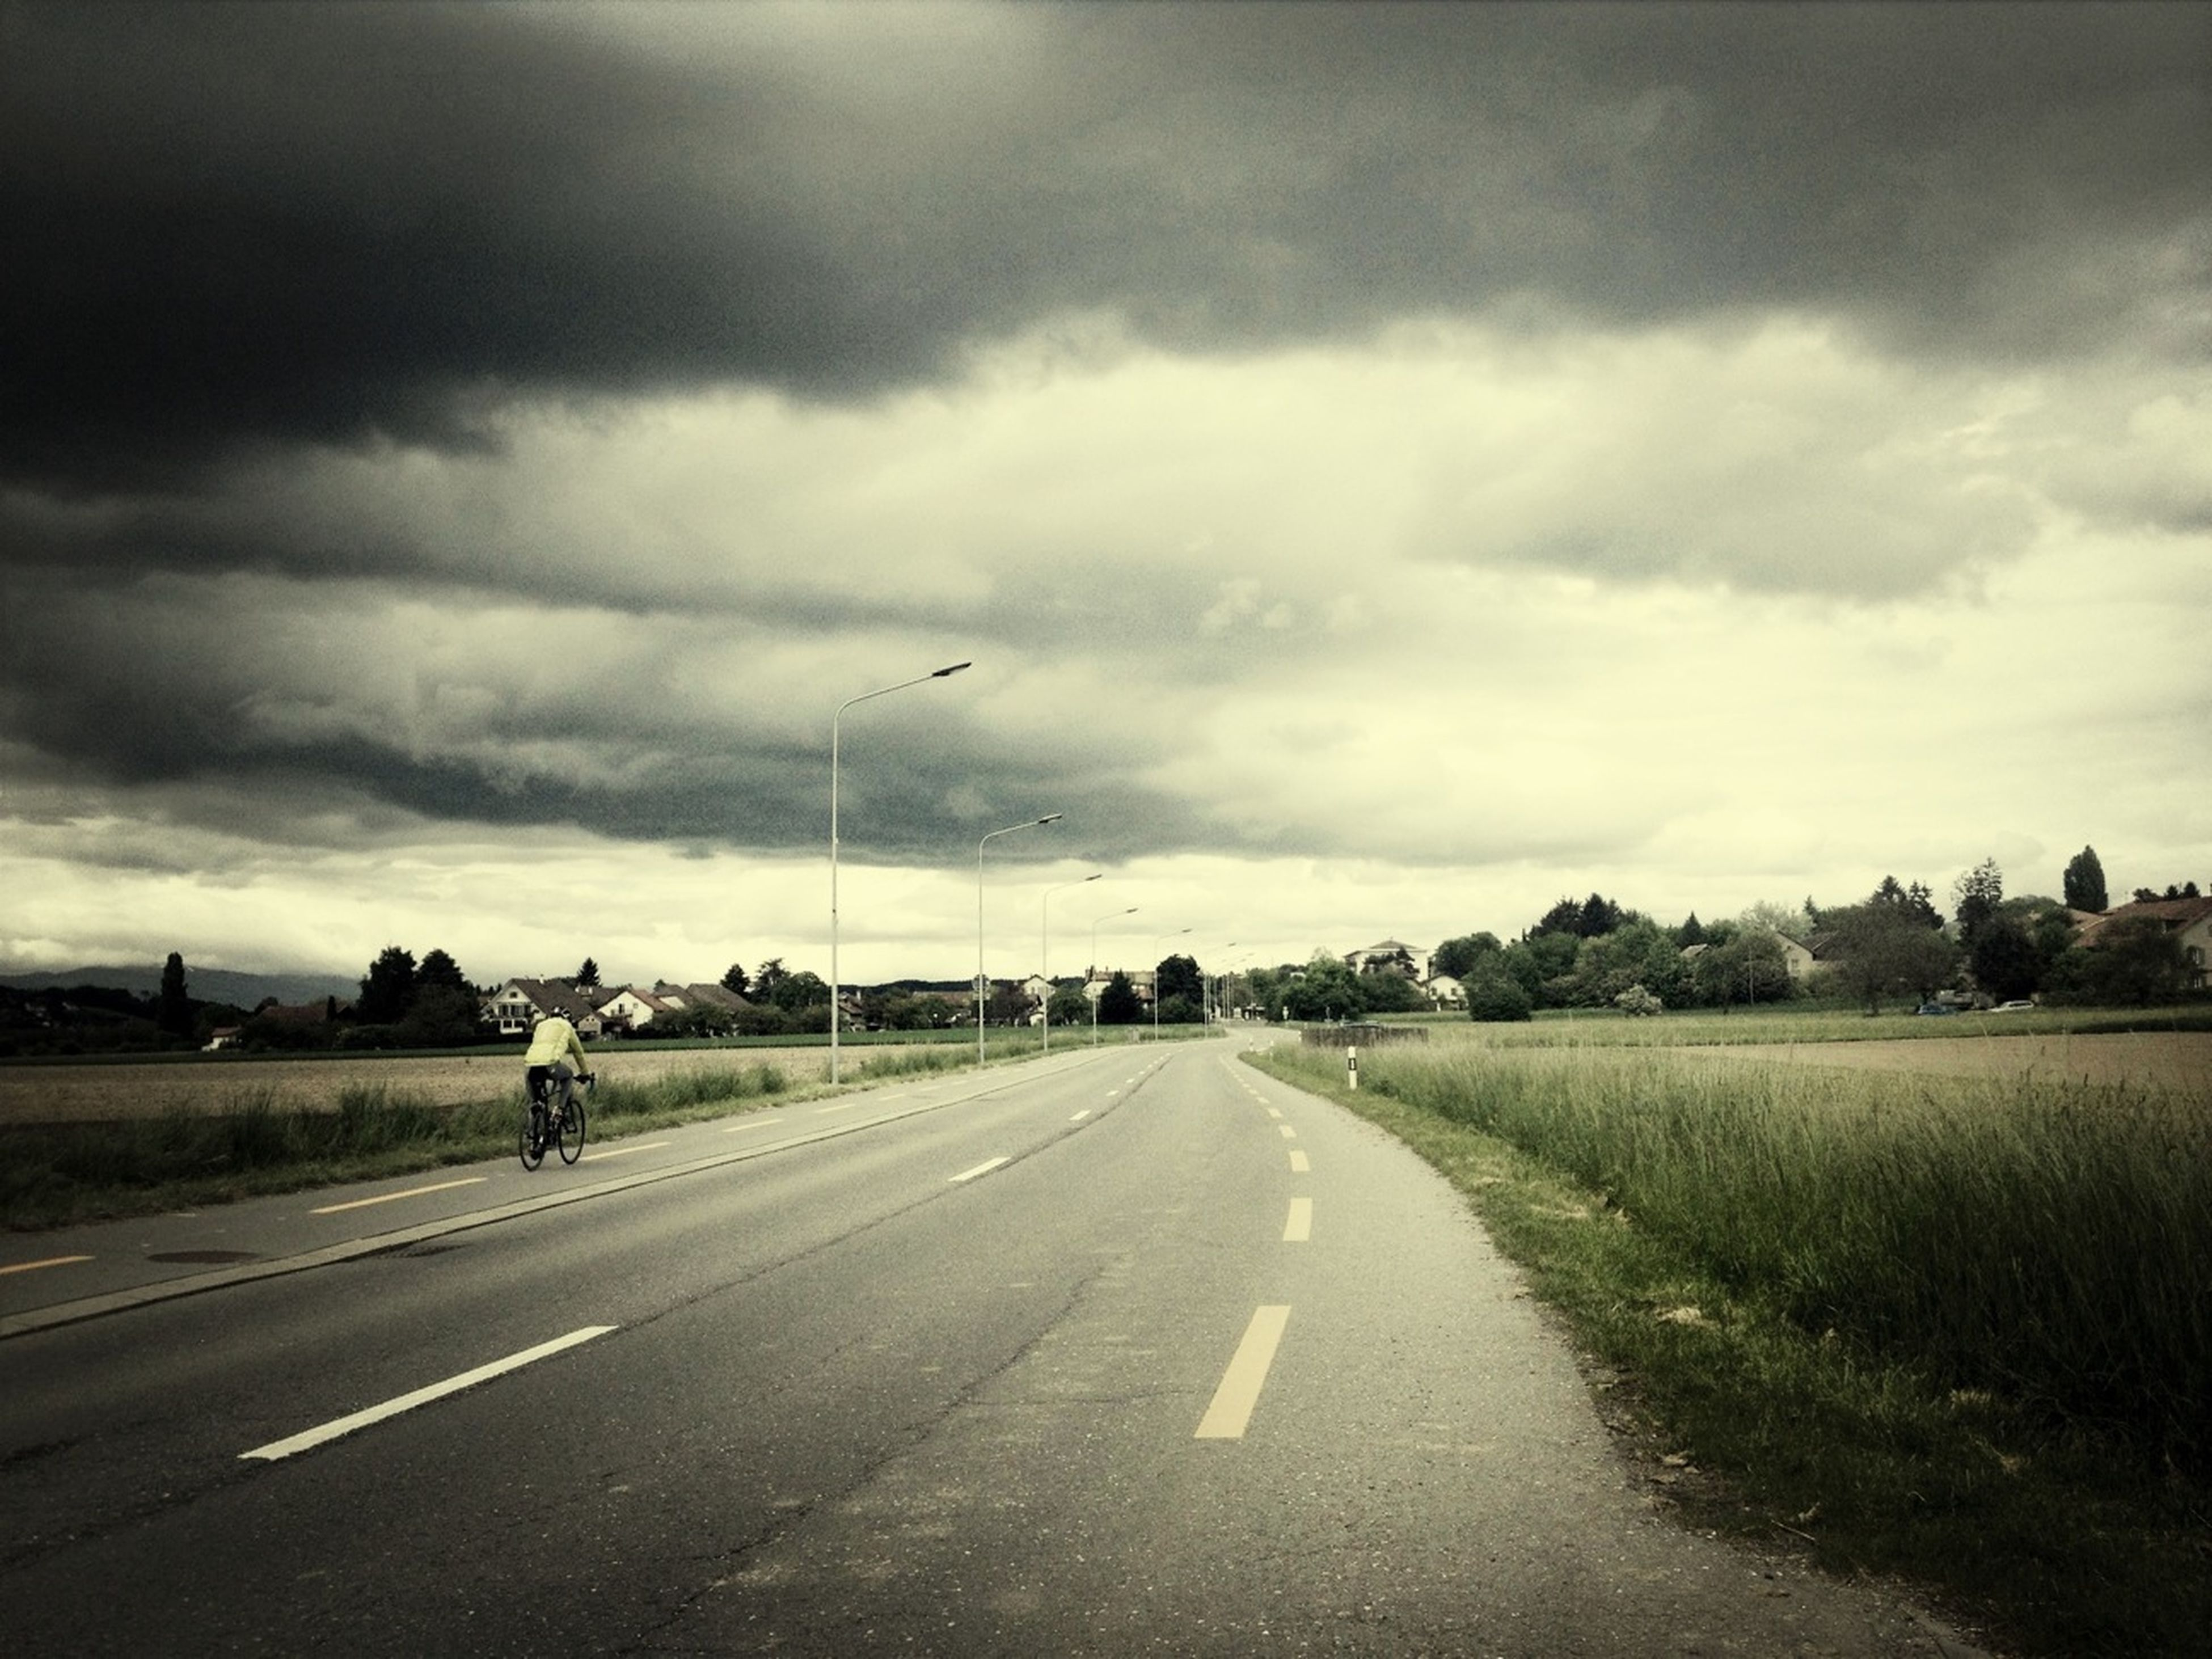 the way forward, road, transportation, sky, diminishing perspective, vanishing point, cloud - sky, cloudy, road marking, country road, street, empty road, empty, cloud, landscape, overcast, field, long, nature, asphalt